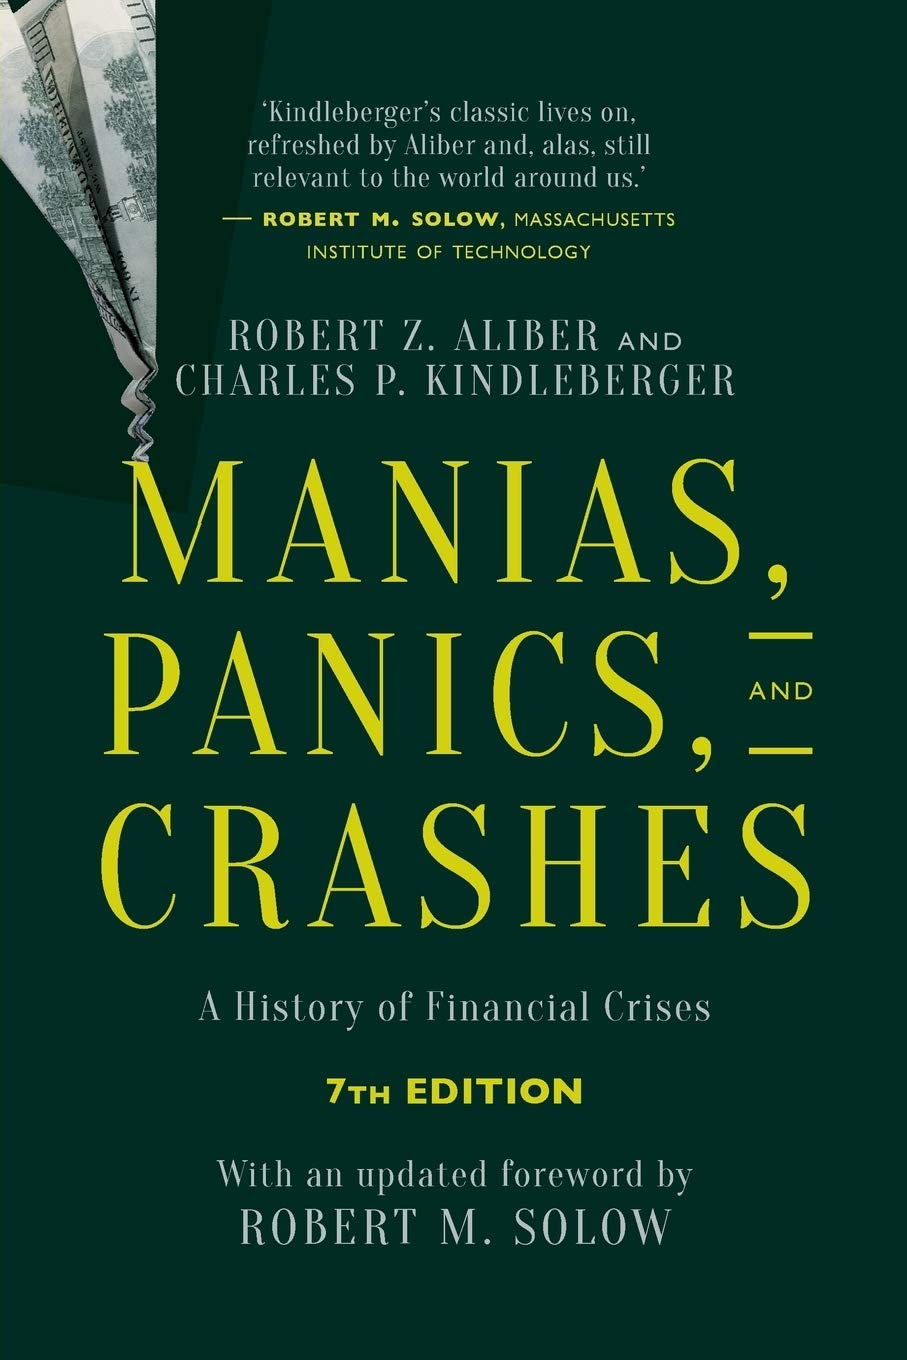 Image OfManias, Panics, And Crashes: A History Of Financial Crises